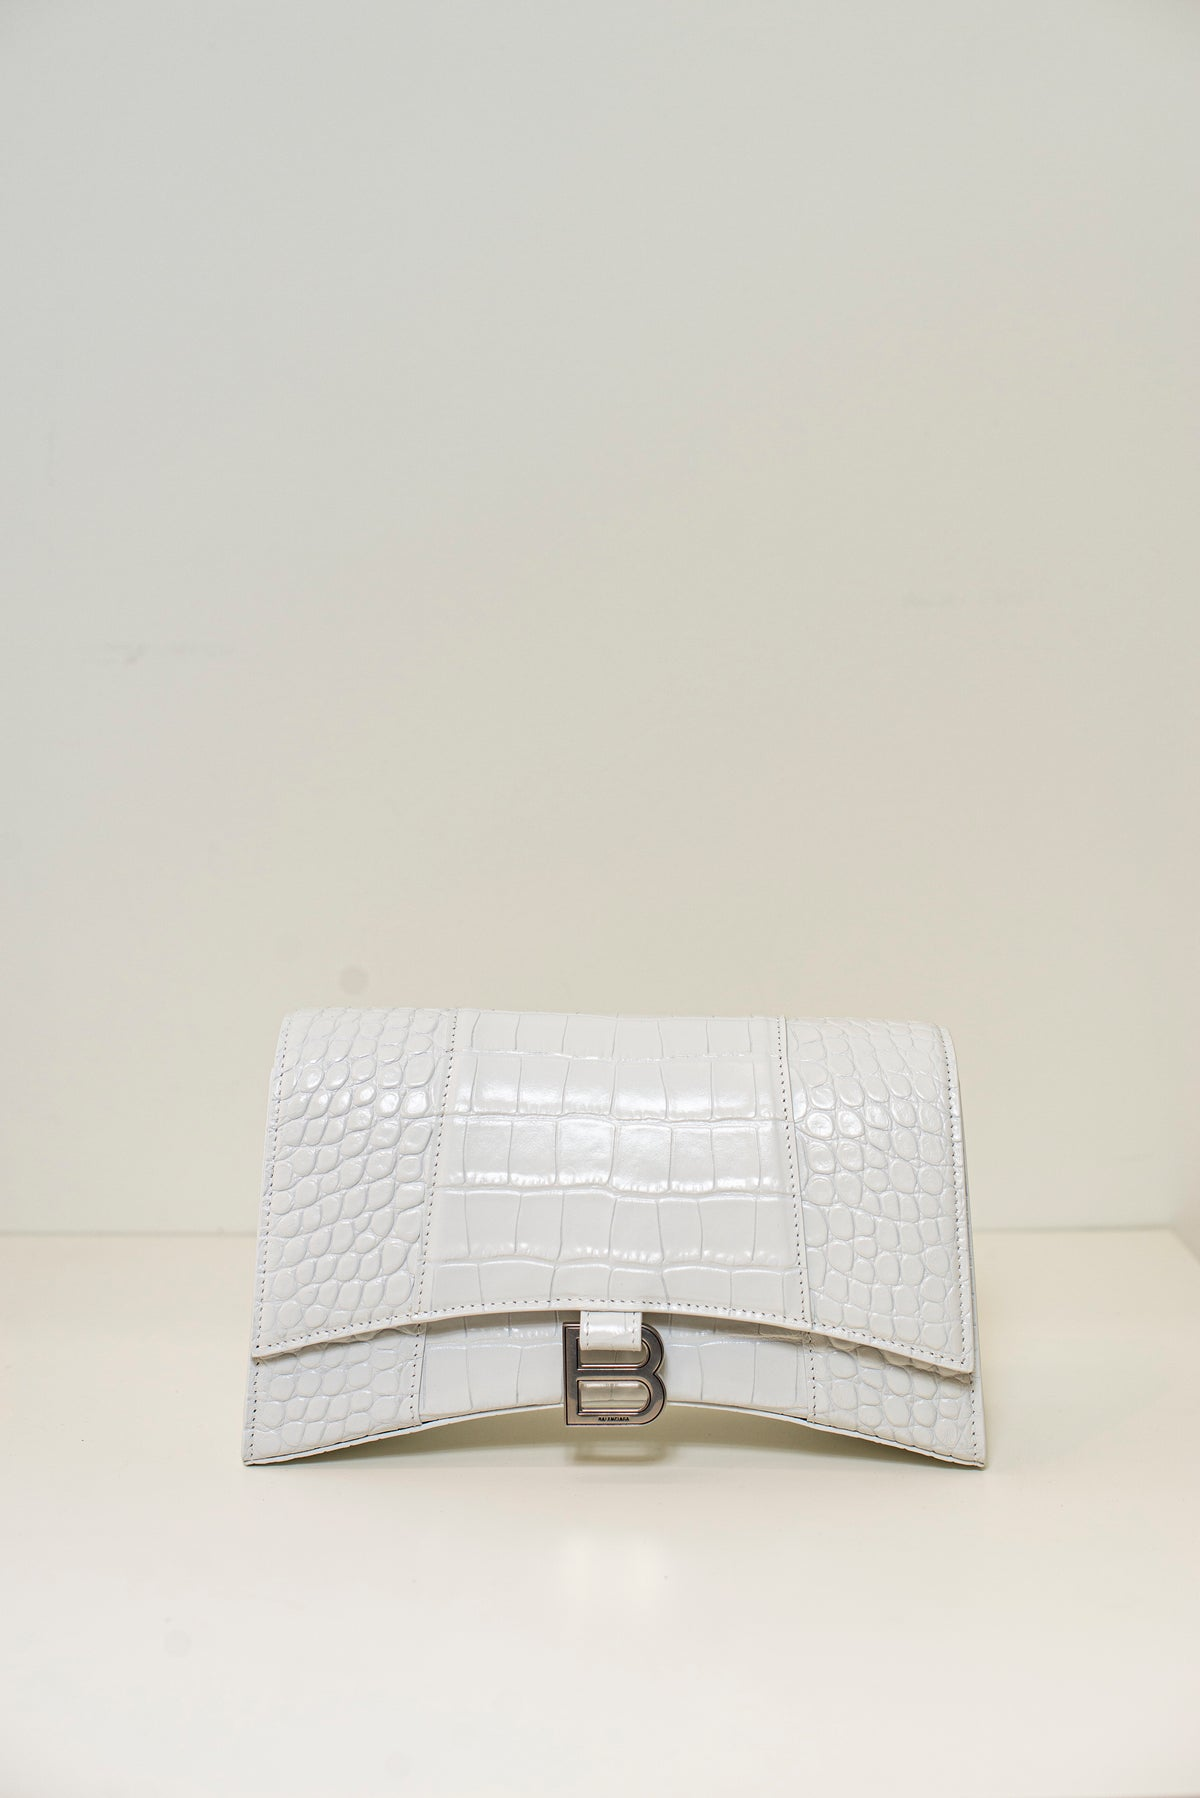 BALENCIAGA - Hourglass Sling Bag | White